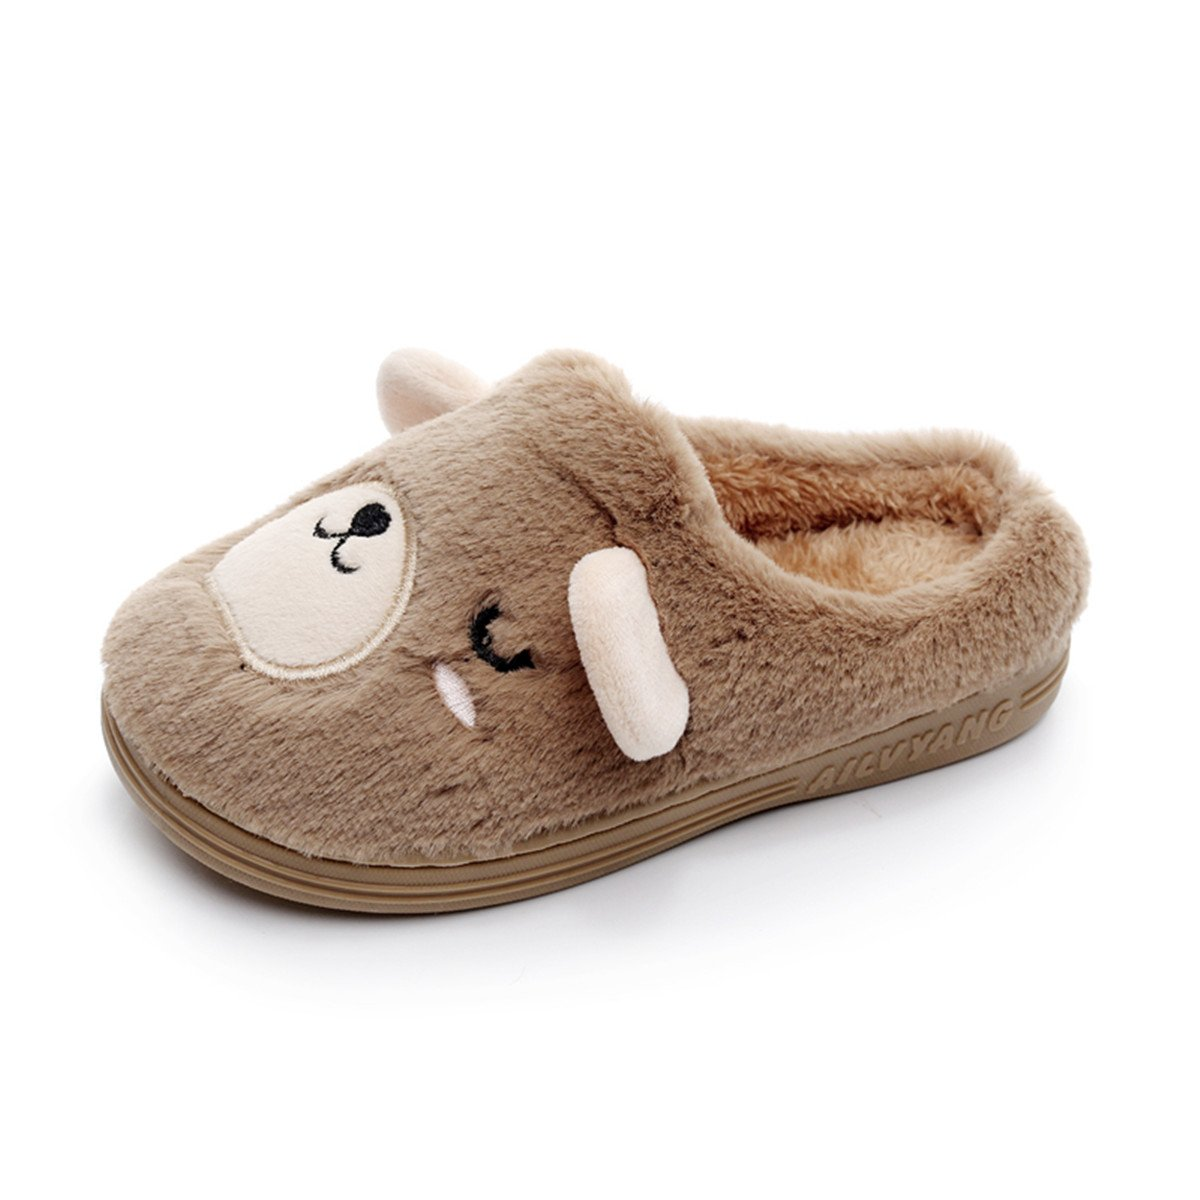 Toddler Girls Boys Slipper Shoes For Kids Warm Winter Bedroom Indoor House Slipper